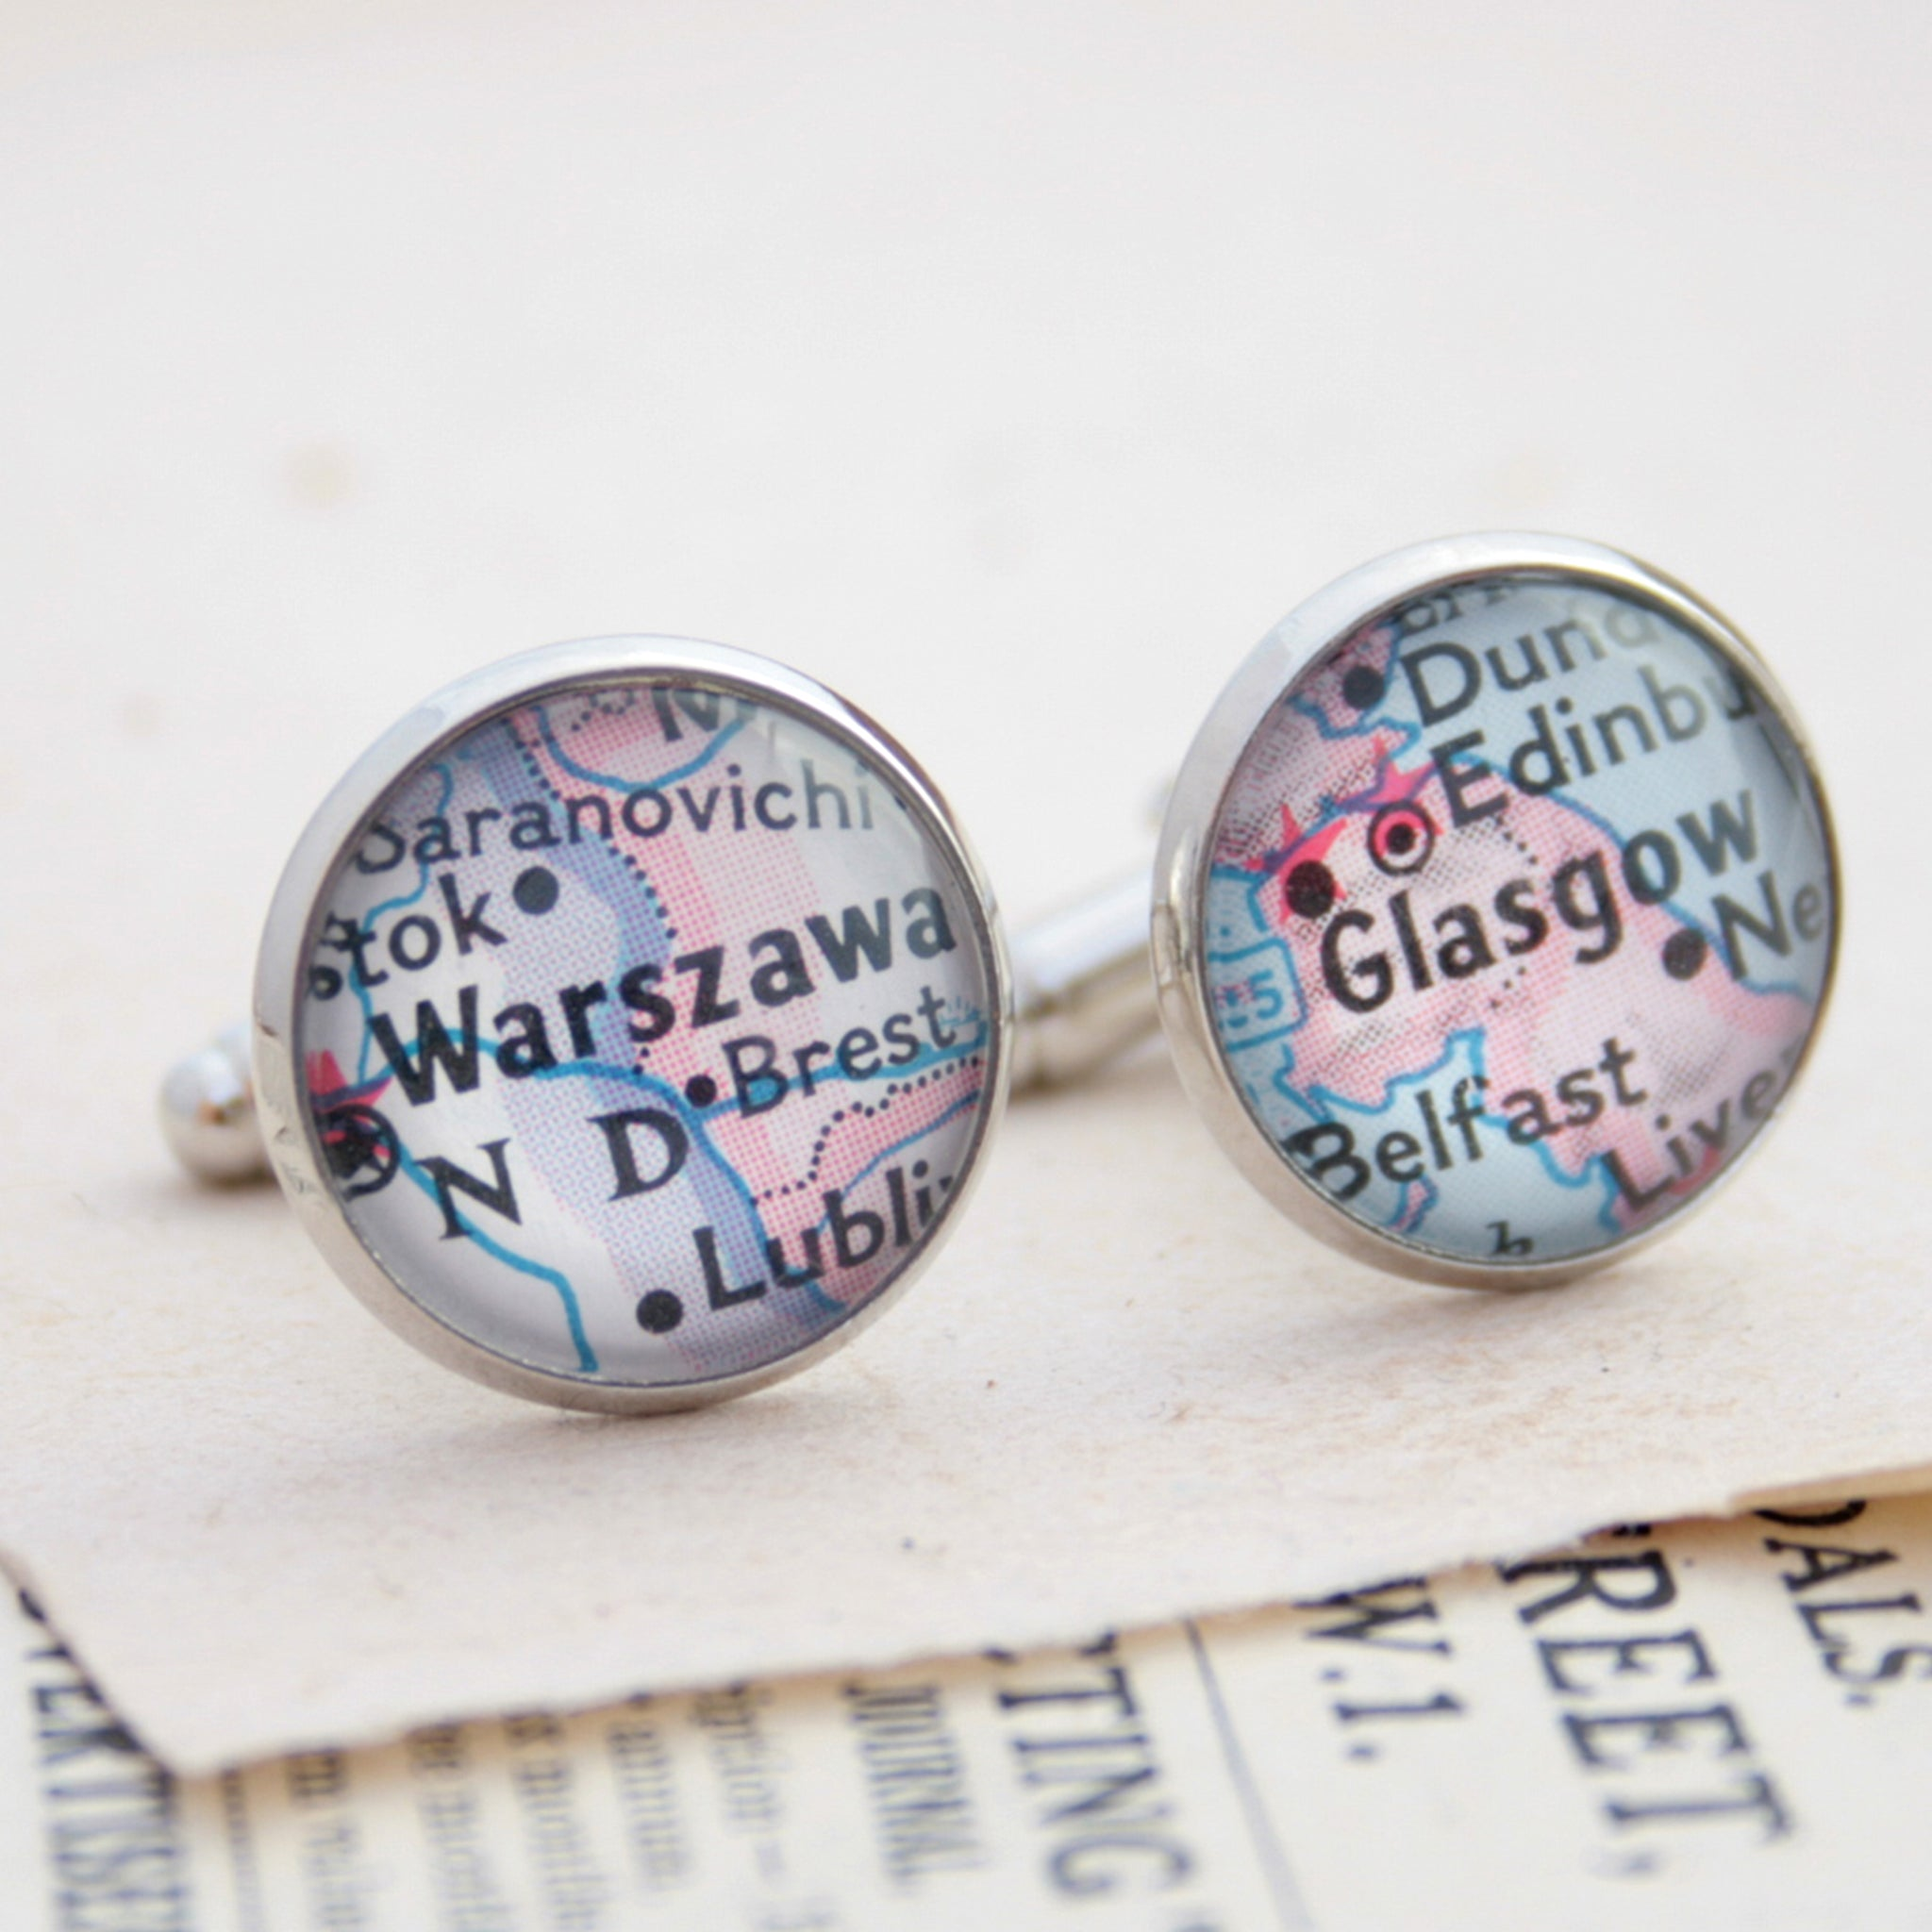 Personalised Map Cufflinks in silver colour featuring Warsaw and Glasgow